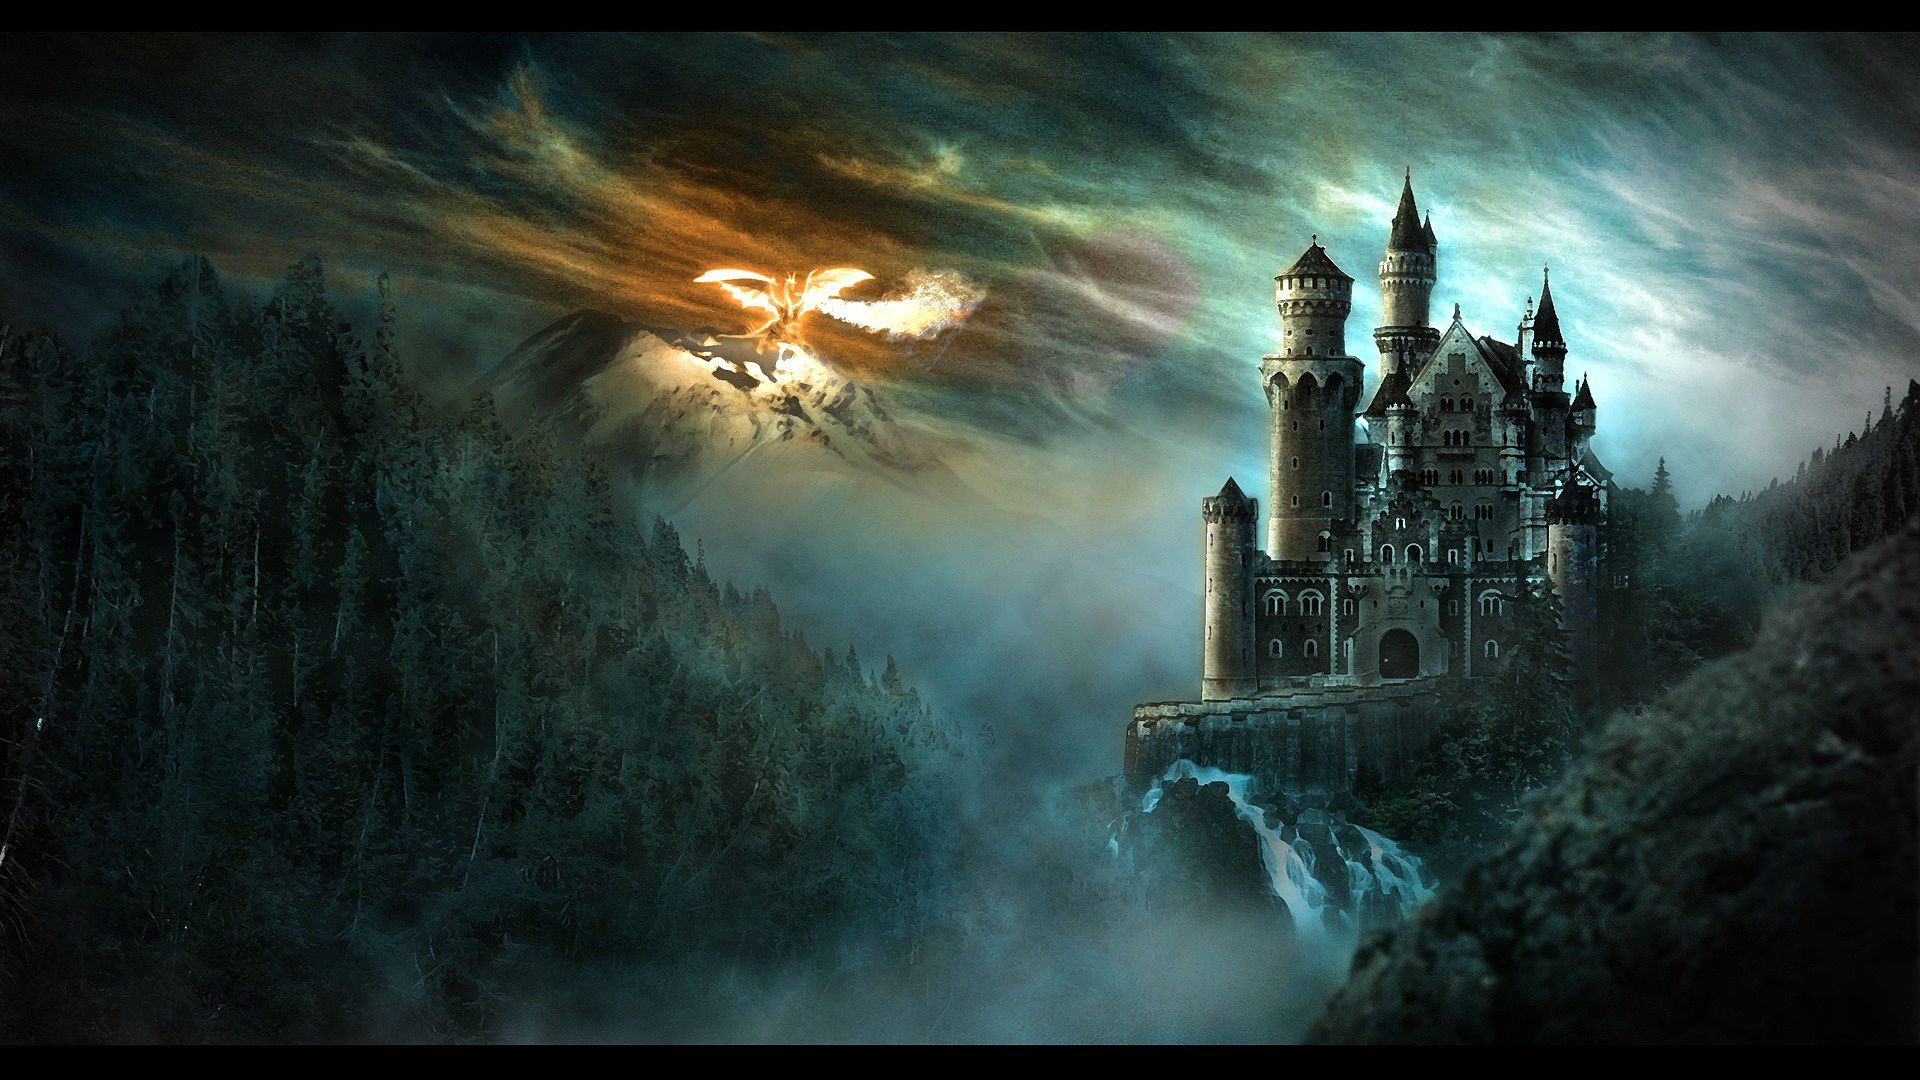 Forgotten Realms Wallpapers Dungeons And Dragons Forgotten Realms Dungeon